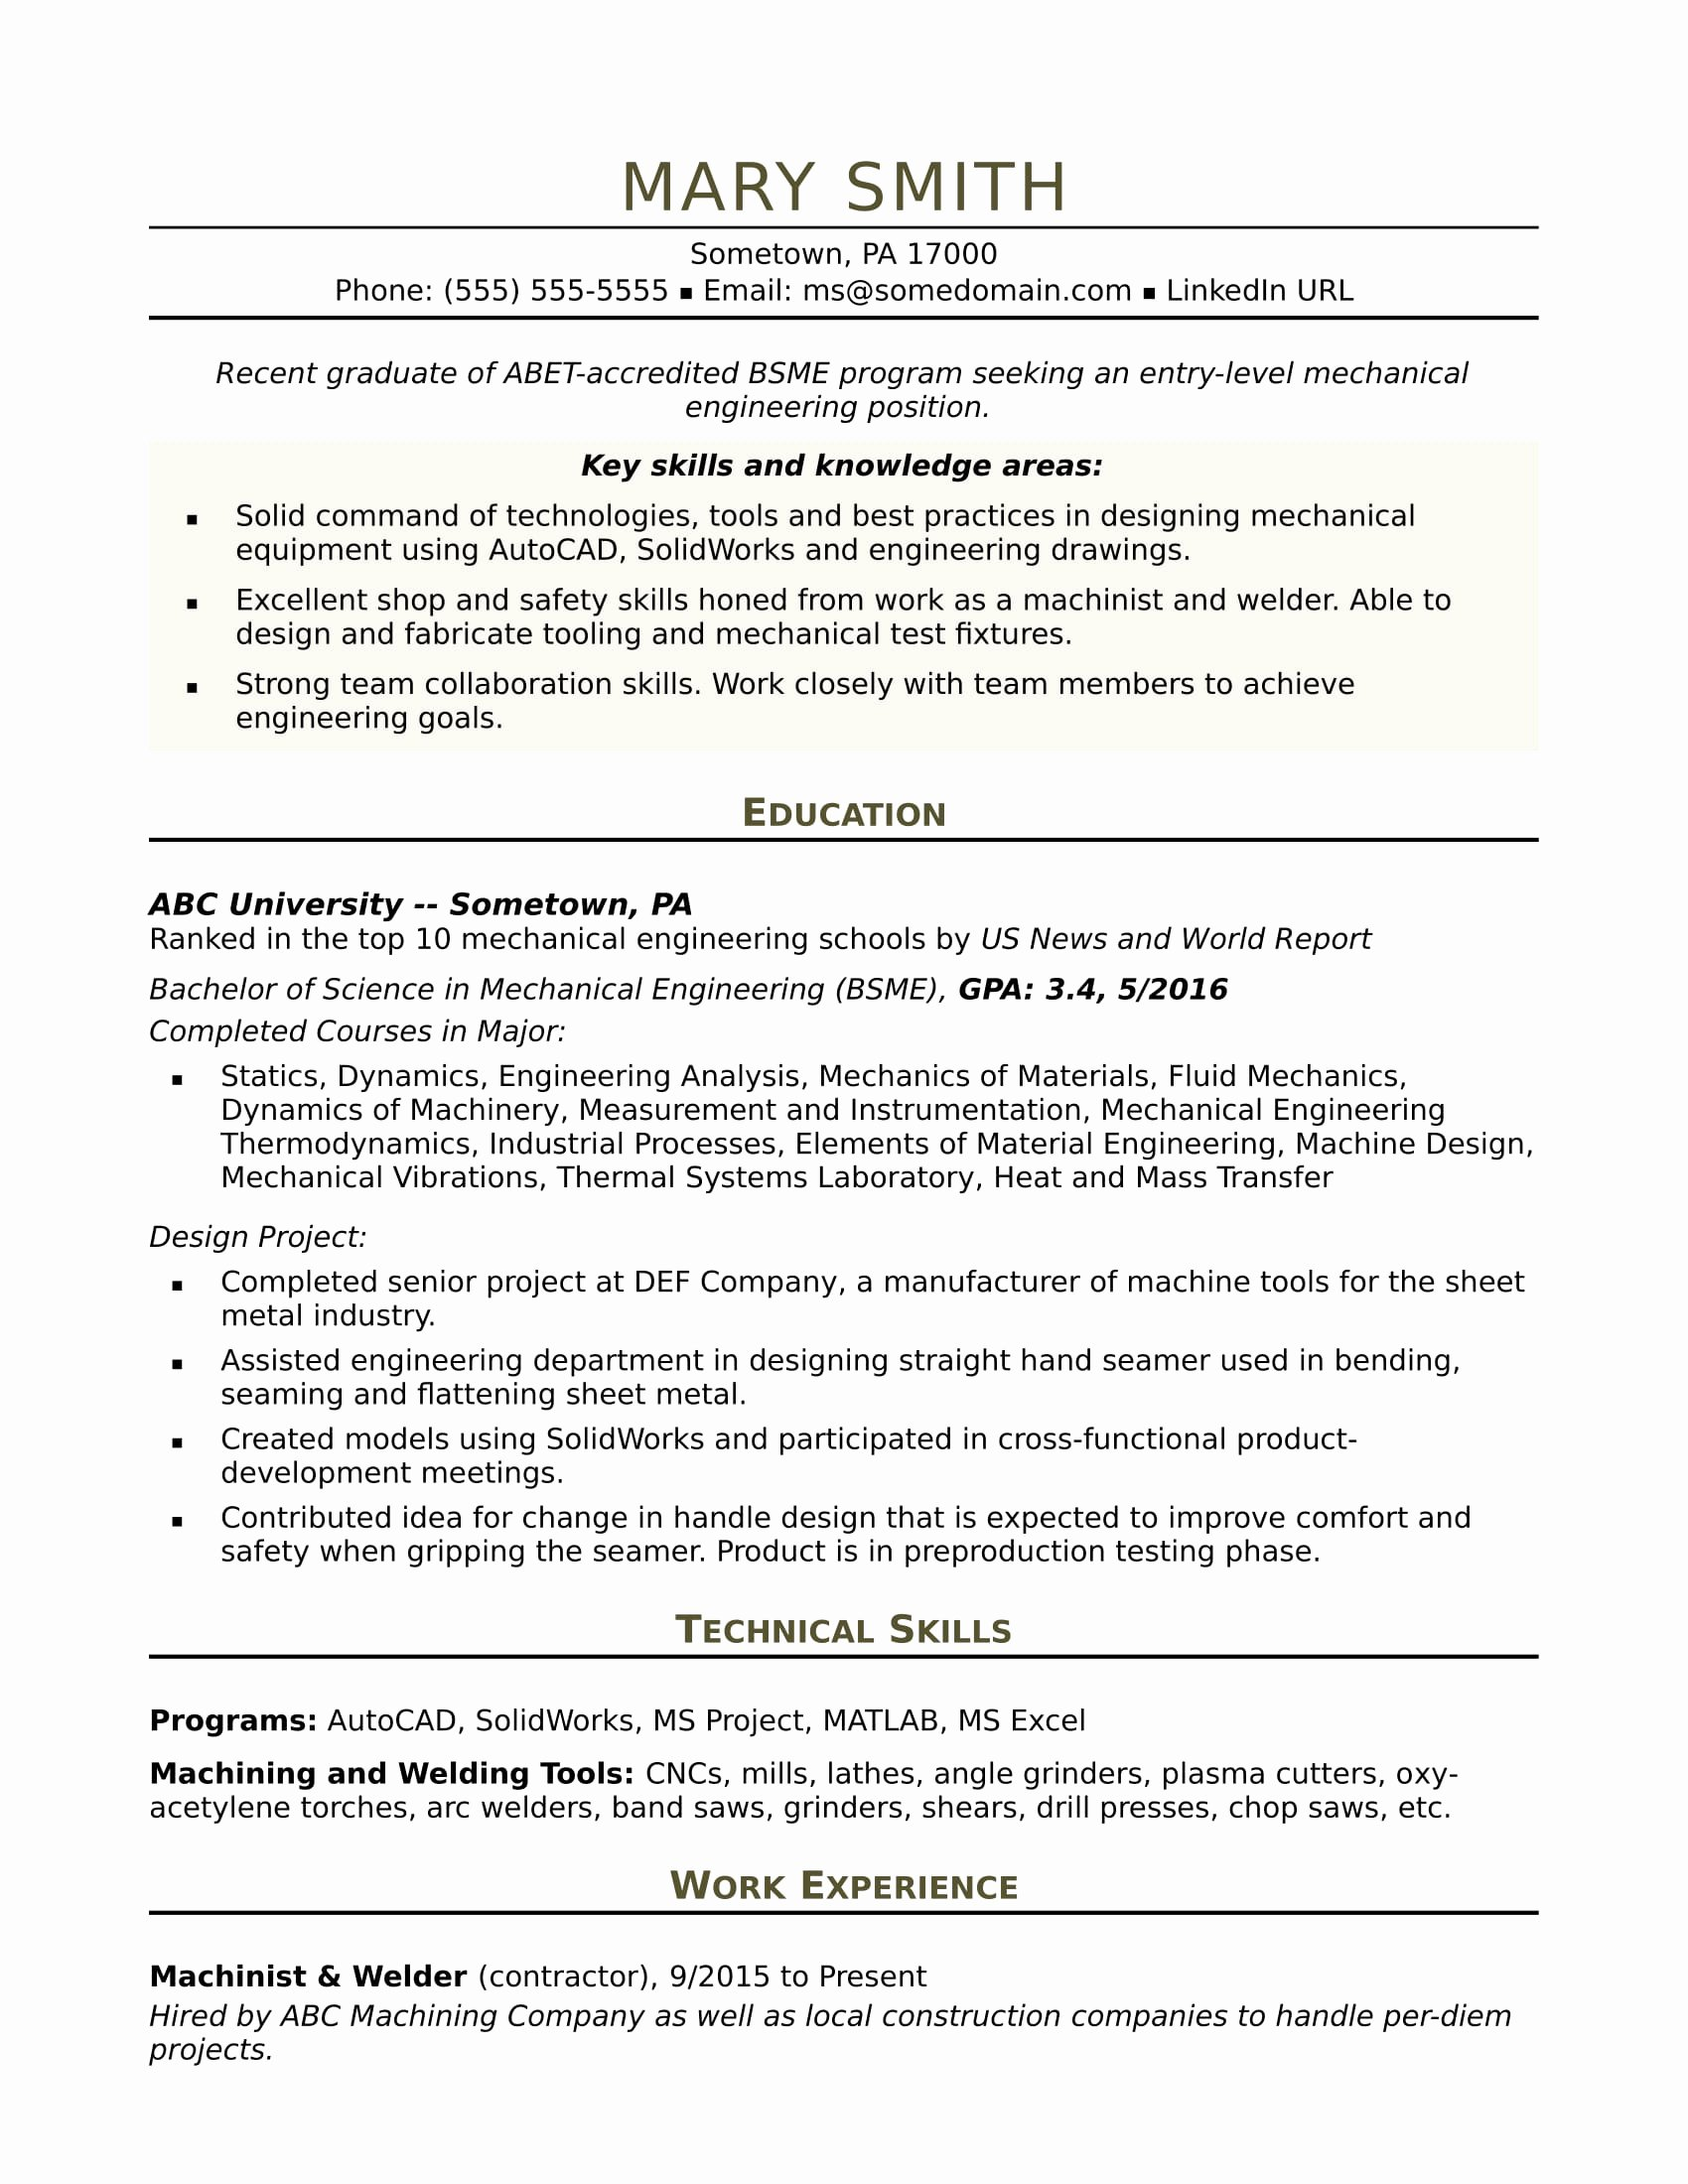 Mechanical Engineering Resume Template Unique Sample Resume for An Entry Level Mechanical Engineer